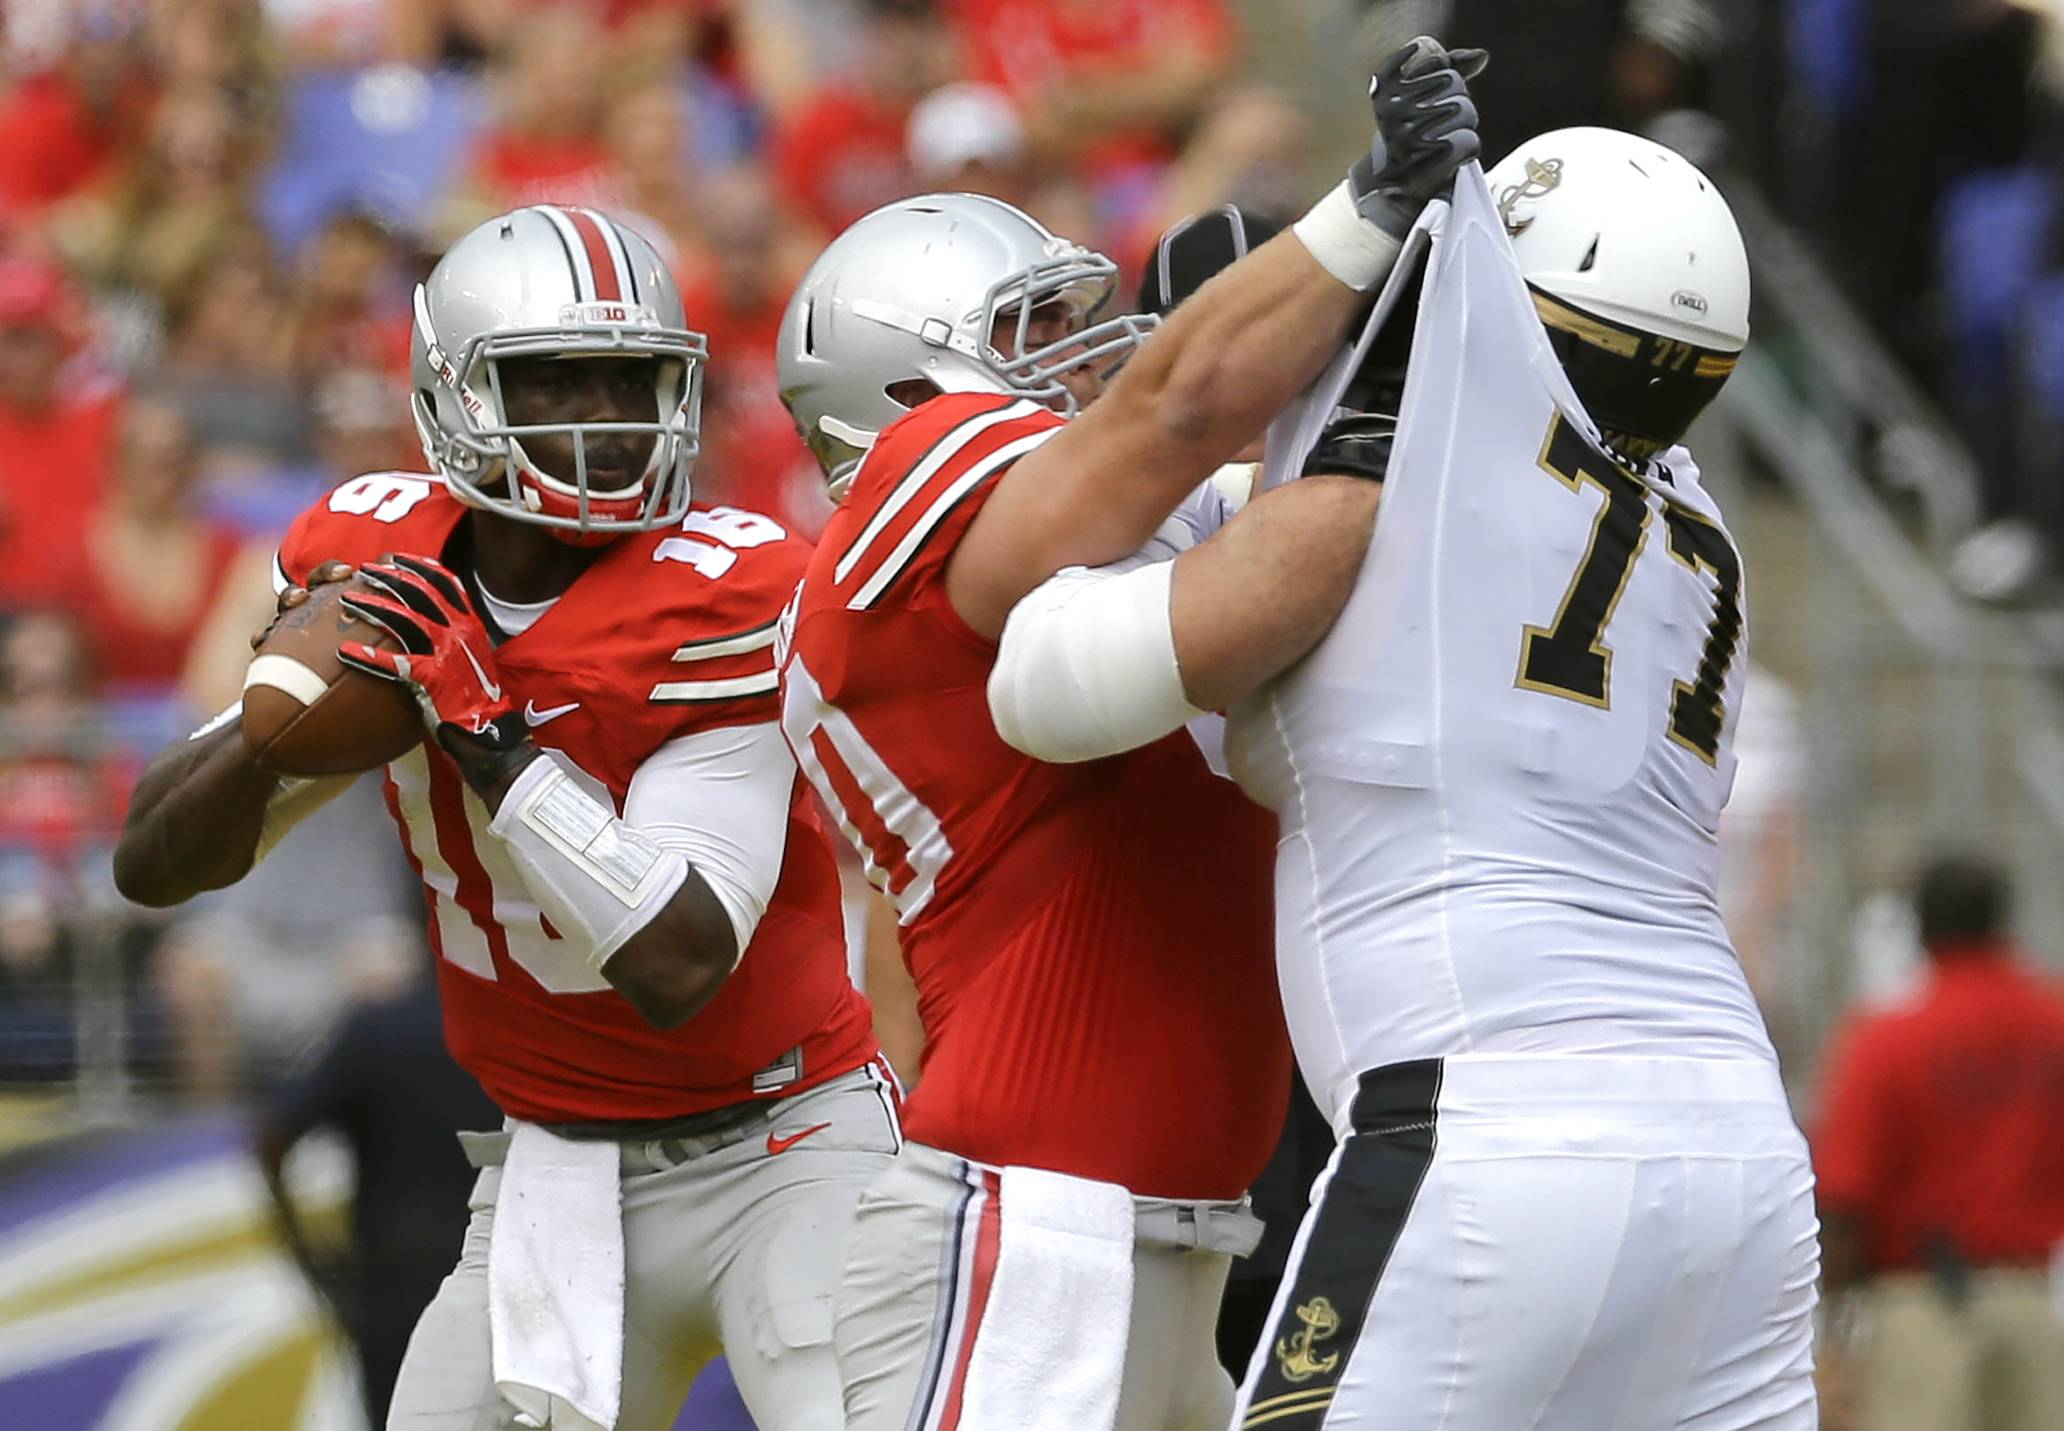 Ohio State quarterback J.T. Barrett, left, looks for a receiver as center Jacoby Boren blocks Navy guard Bernard Sarra during the first half Saturday in Baltimore.